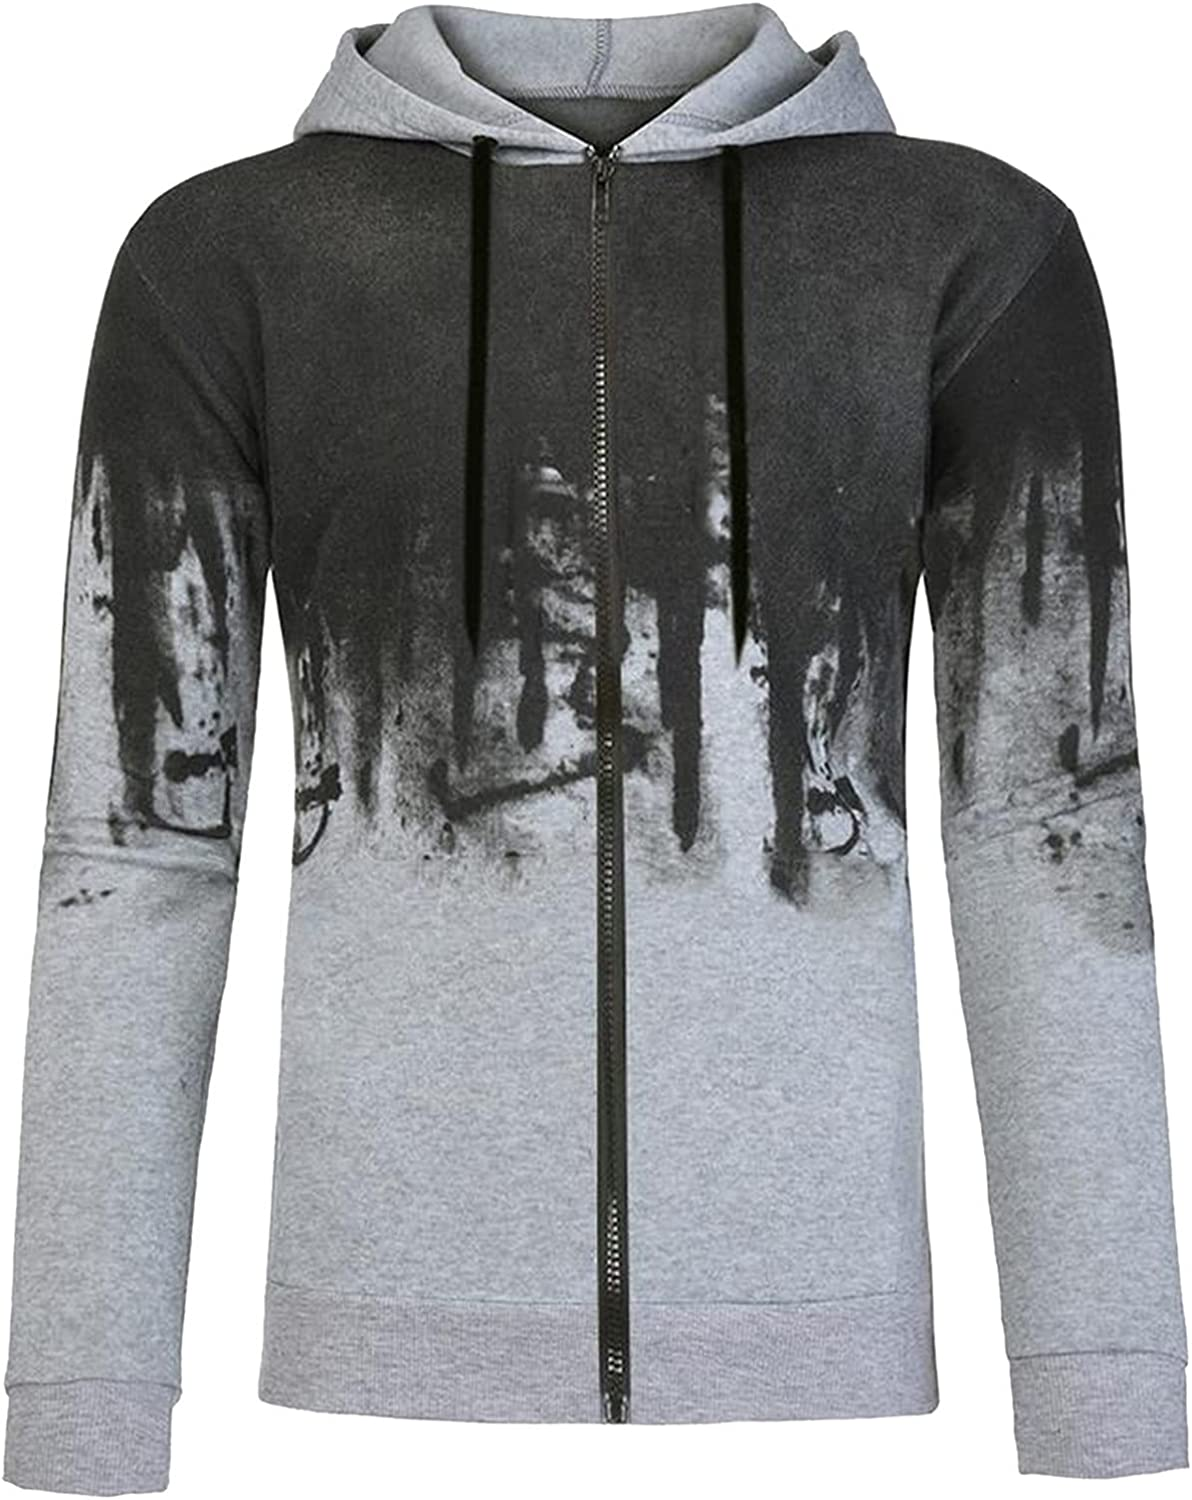 Men's Zipper Printed Pullover Tops Ink-Splash Printed Pullover Long Sleeved Casual Hooded Top Blouse Japanese Sweater